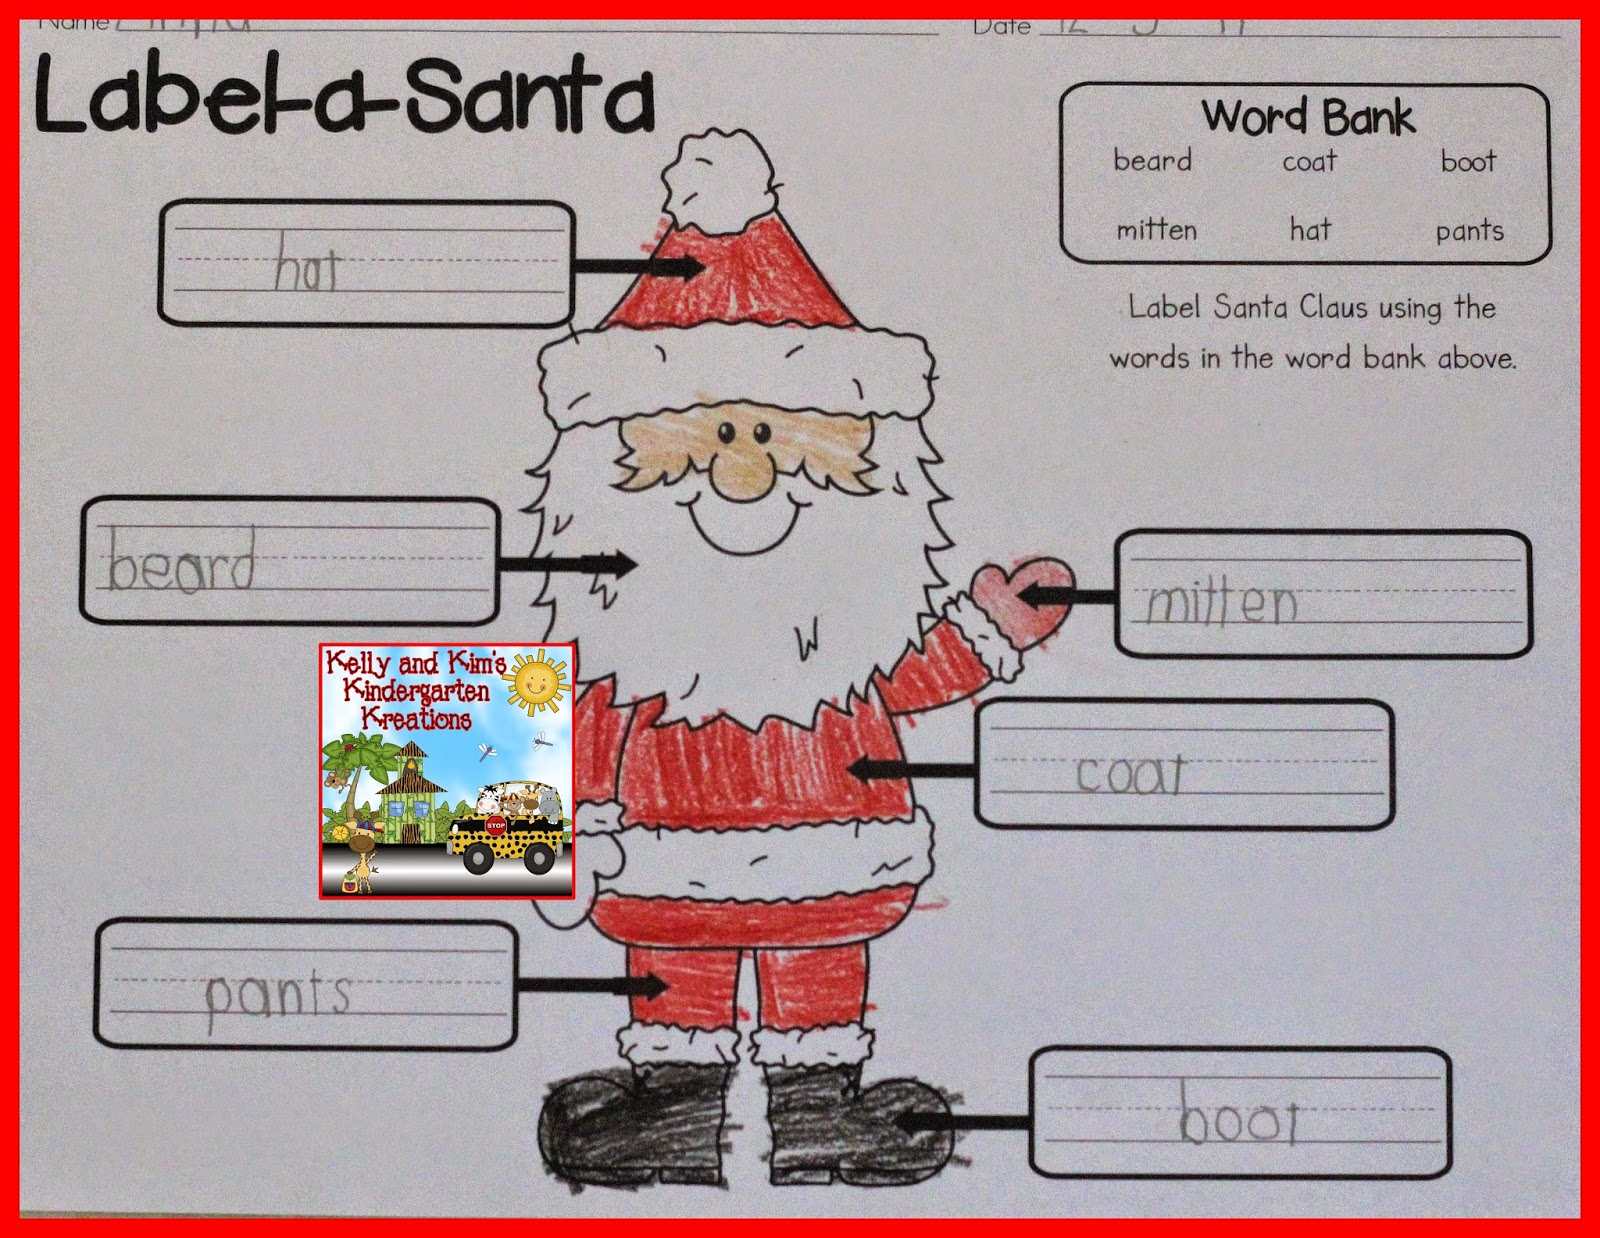 Kelly and kims kreations unwrap a gift linky party a word bank is included to help the children match the words and spell them correctly this is a good activity to reinforce coloring writing spiritdancerdesigns Image collections